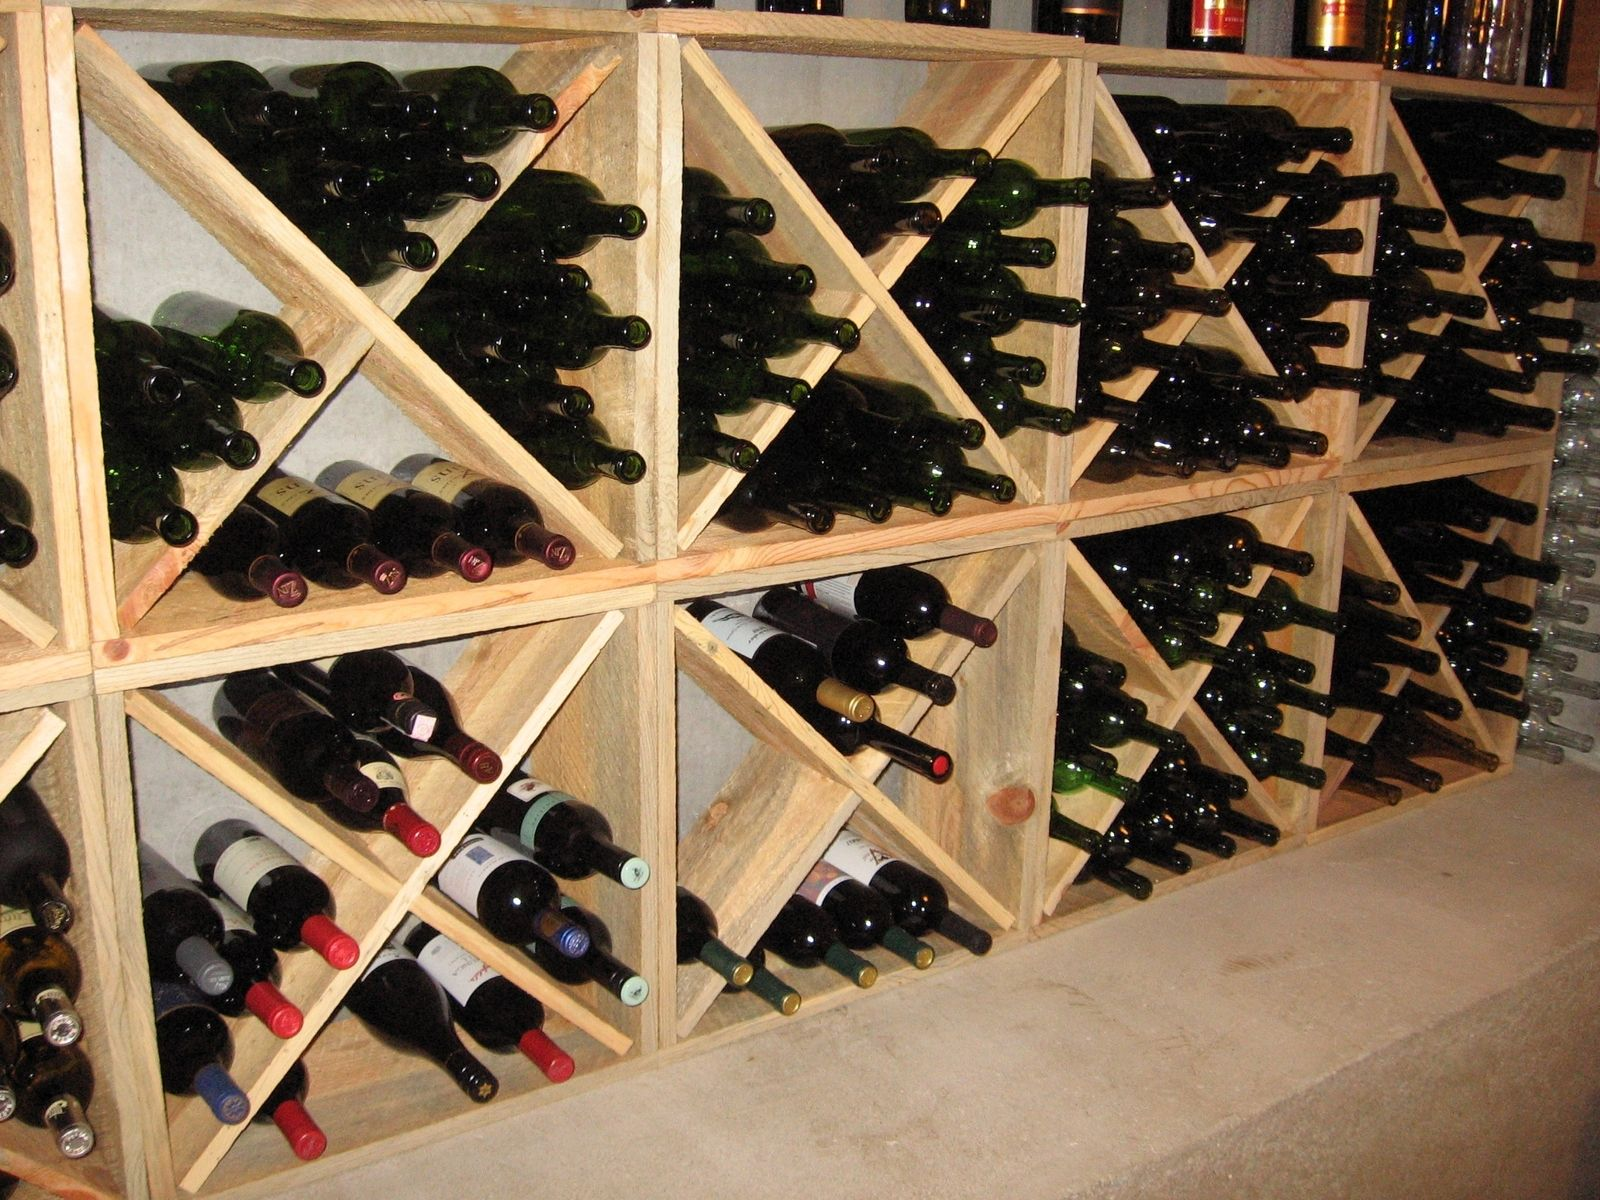 Custom Made Wine Racks By Against The Grain Woodworking Design Llc With Images Wood Working Gifts Woodworking Basics Woodworking